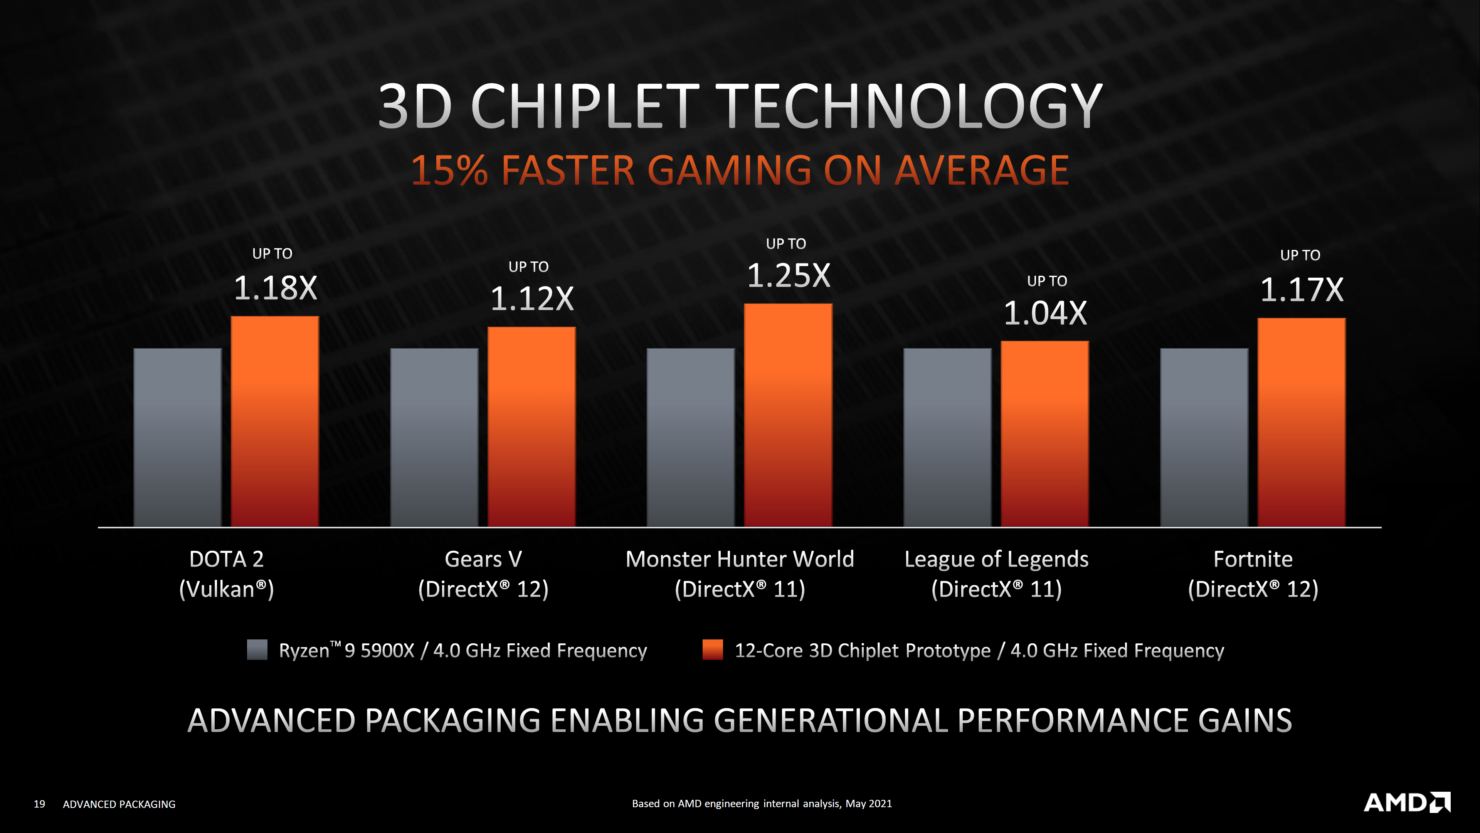 amd-advanced-3d-chiplet-packaging-3d-stacking-technologies-3d-v-cache-_18